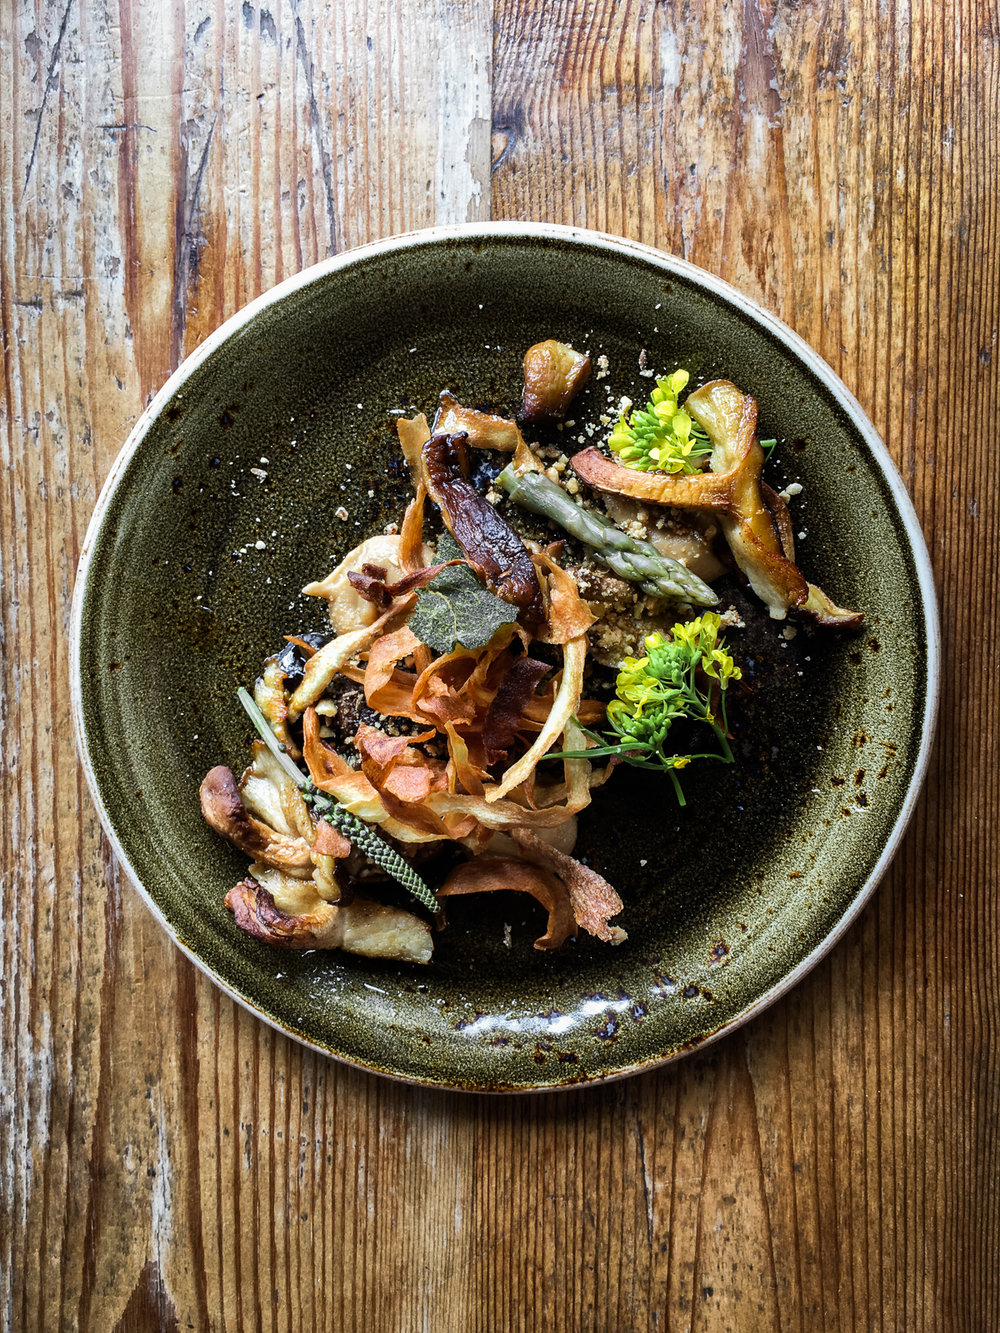 The Ethicurean Pan Fried Shiitakes with Smoked Mushroom Ketchup